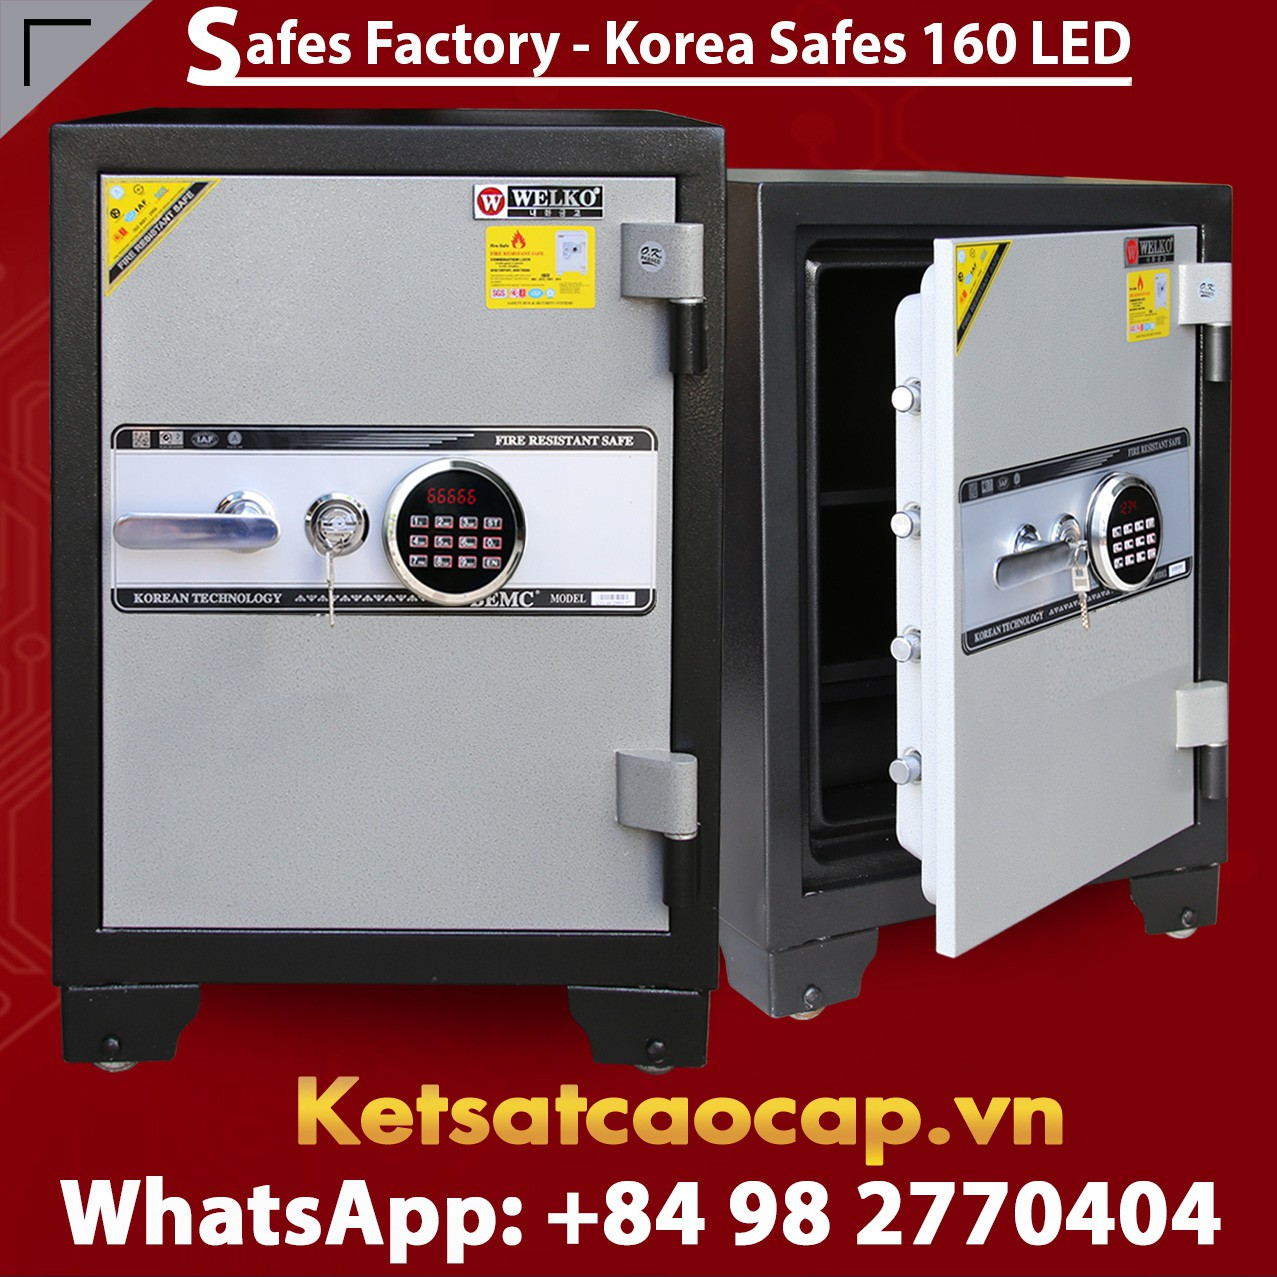 SECURITY STEEL SAFE S160 LED